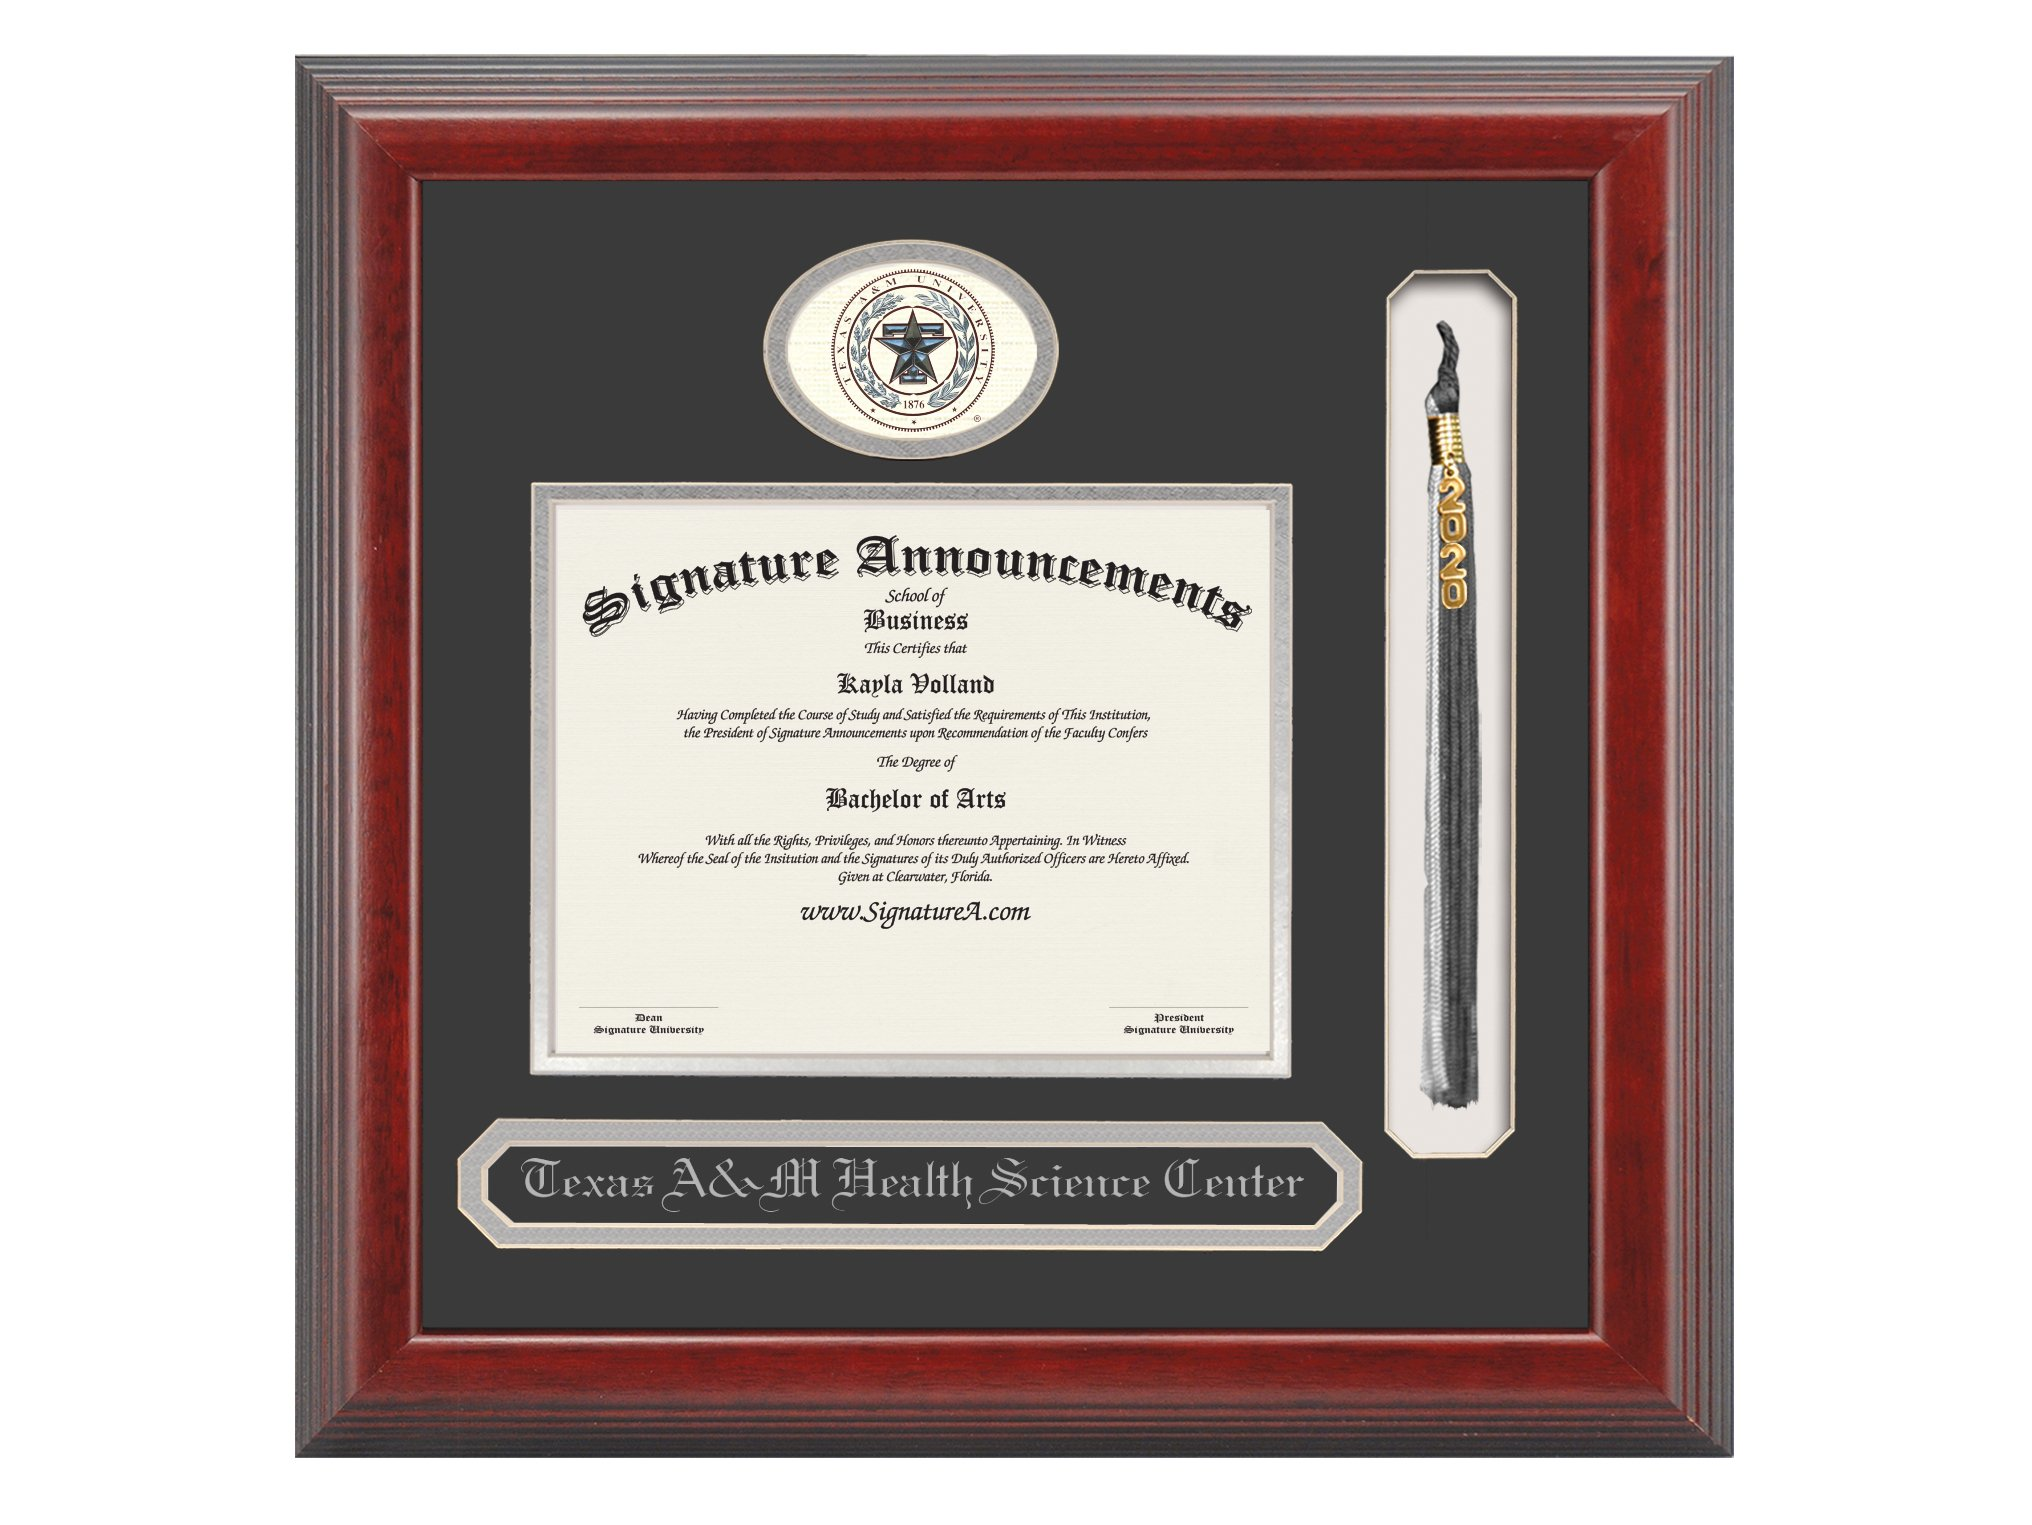 Signature Announcements Texas-a&M-Health-Science-Center-College-of-Nursing Undergraduate, Doctorate Sculpted Foil Seal, Name & Tassel Graduation Diploma Frame, 23'' x 24'', Cherry by Signature Announcements (Image #1)